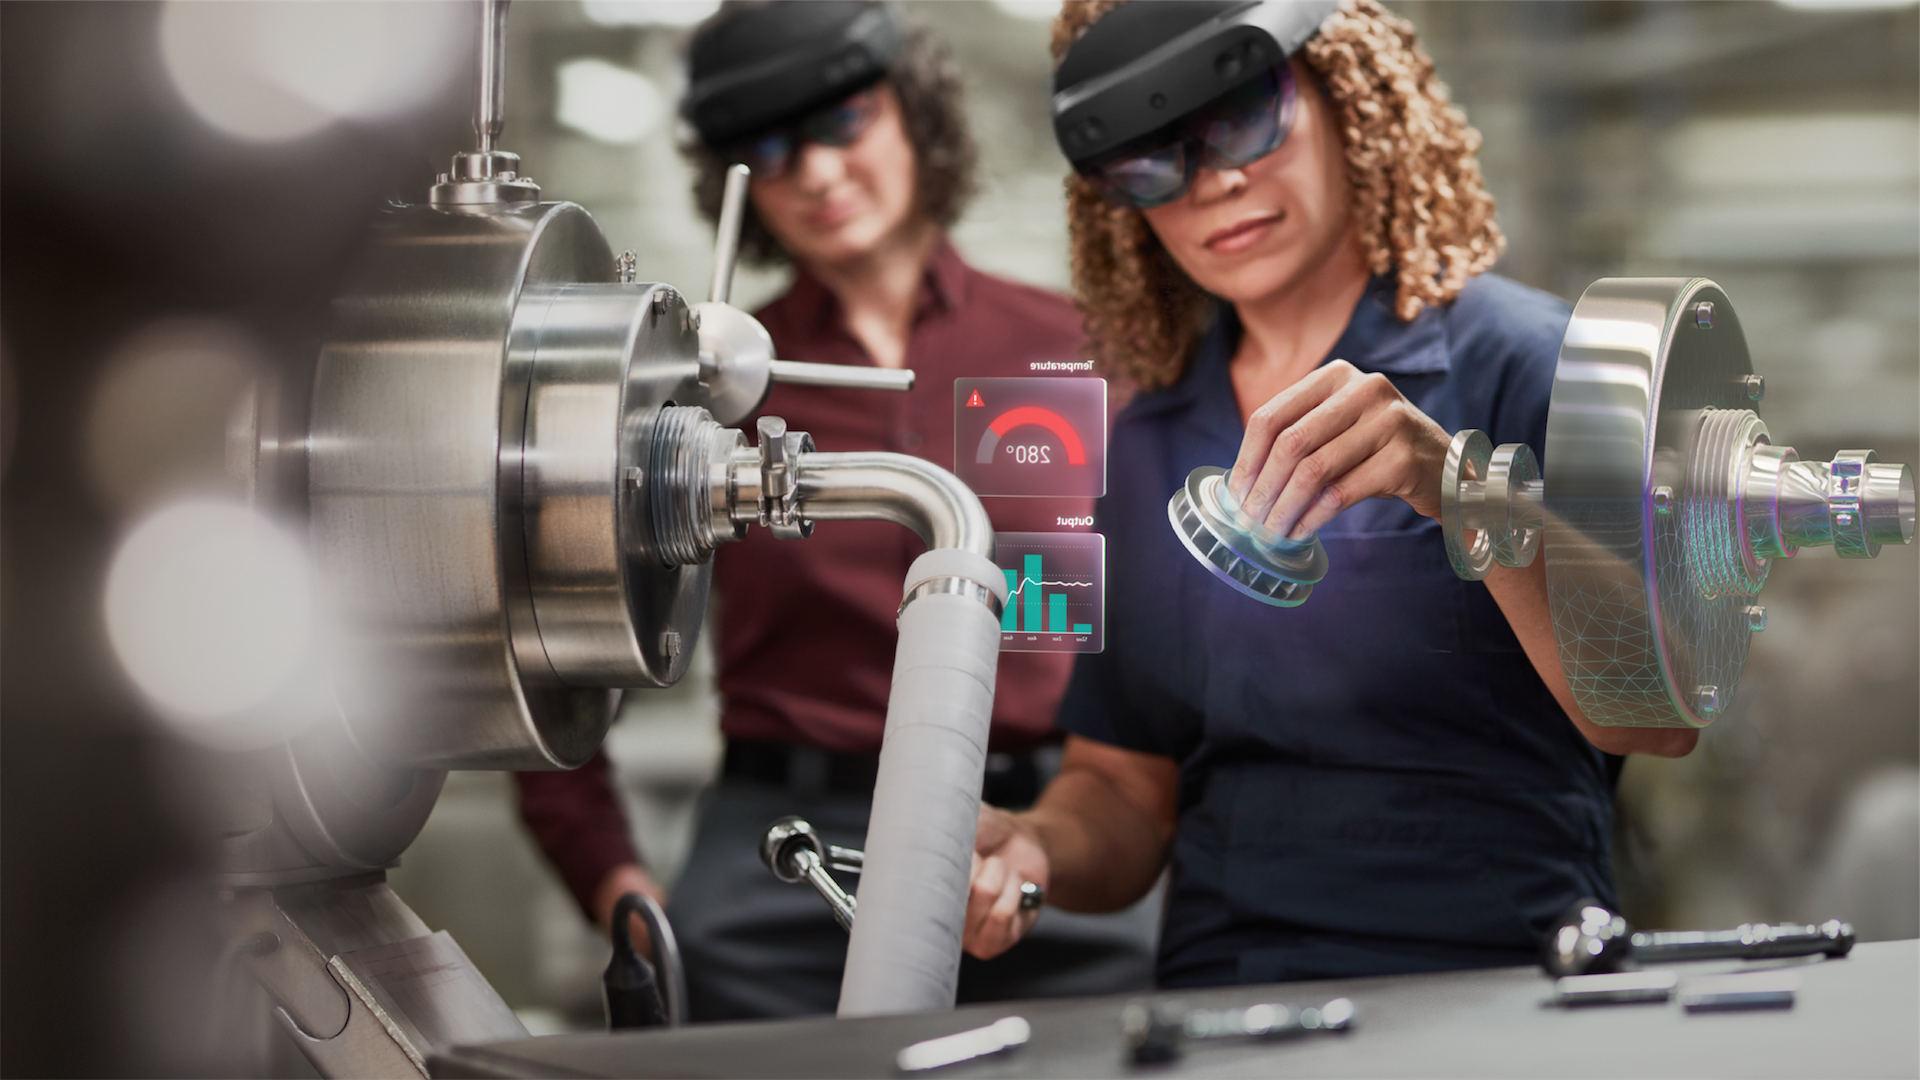 At Hannover Messe 2019, discover how Microsoft is manufacturing a better future.